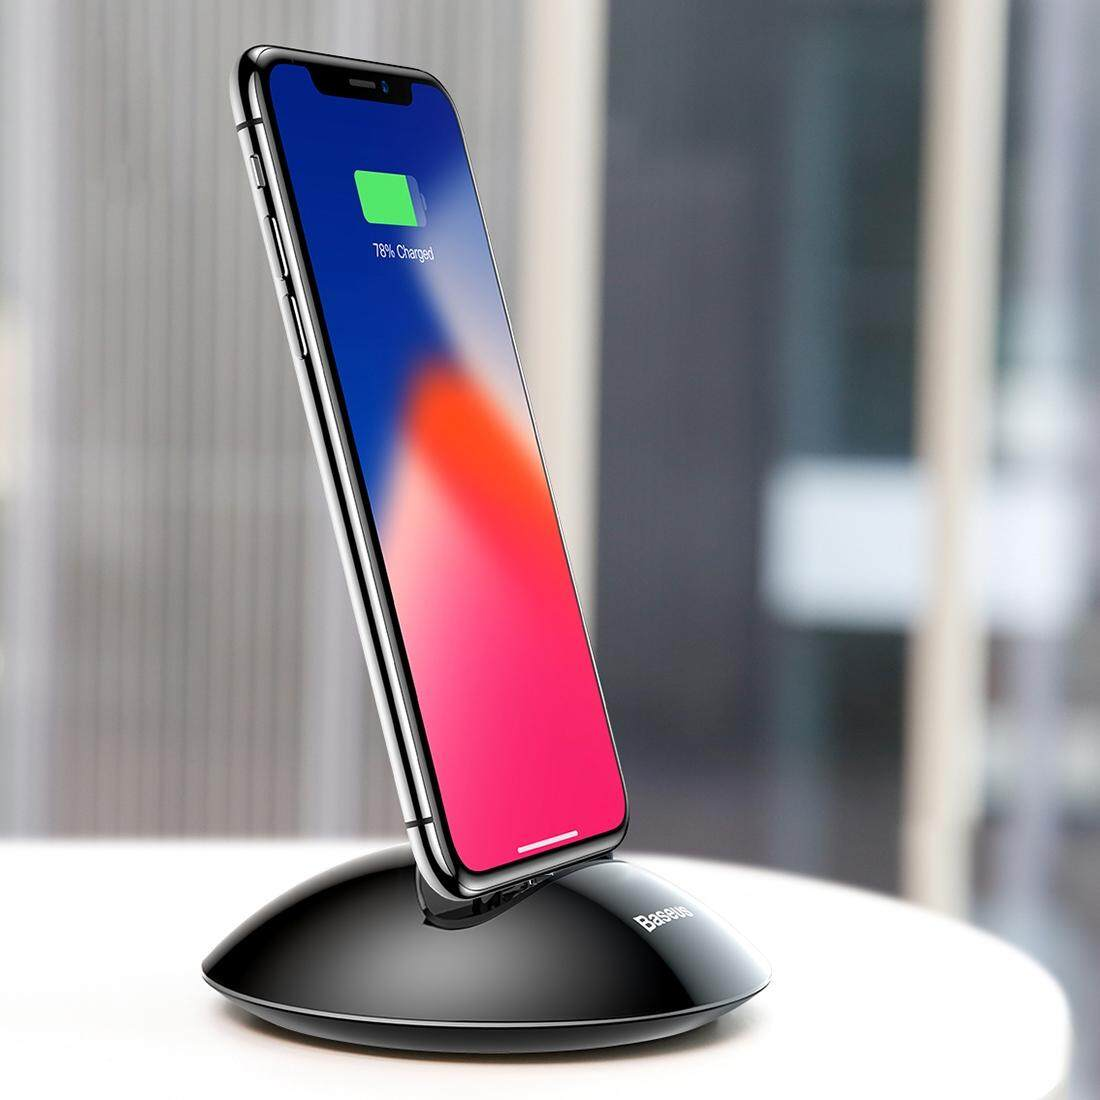 Baseus Northern Hemisphere Series Lightning Desktop Qi Standard Charger Station For Iphone X Iphone 8 And 8 Plus Iphone 7 And 7 Plus Iphone 6 And 6S And 6 Plus And 6S Plus Black Intl Cheap